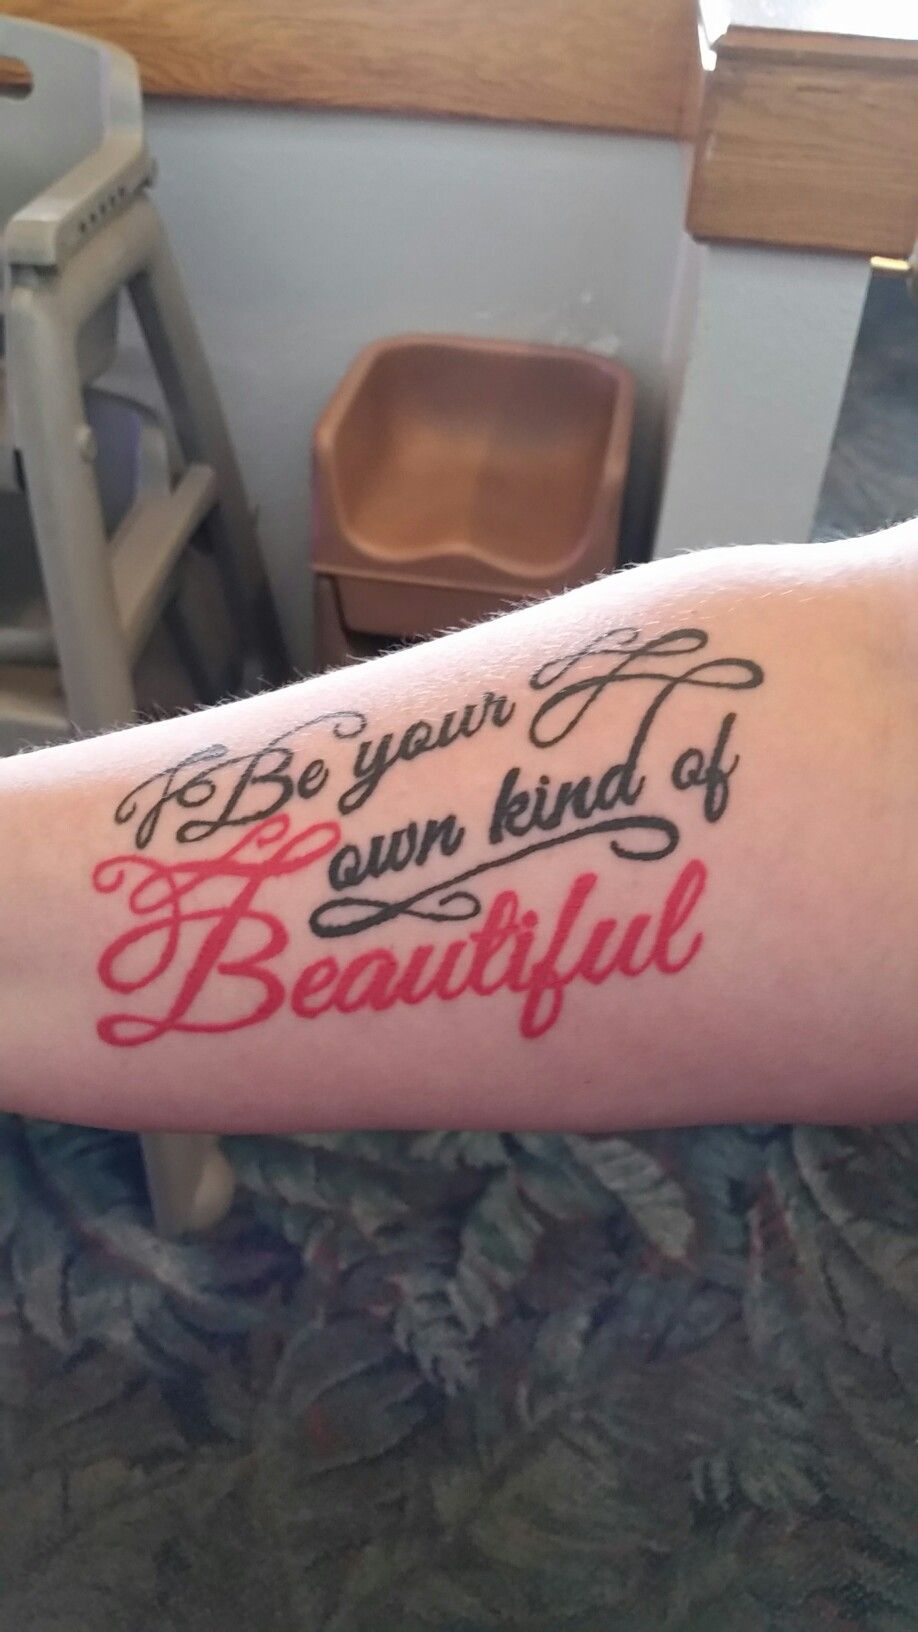 Be your own kind of beautiful.  I love this!